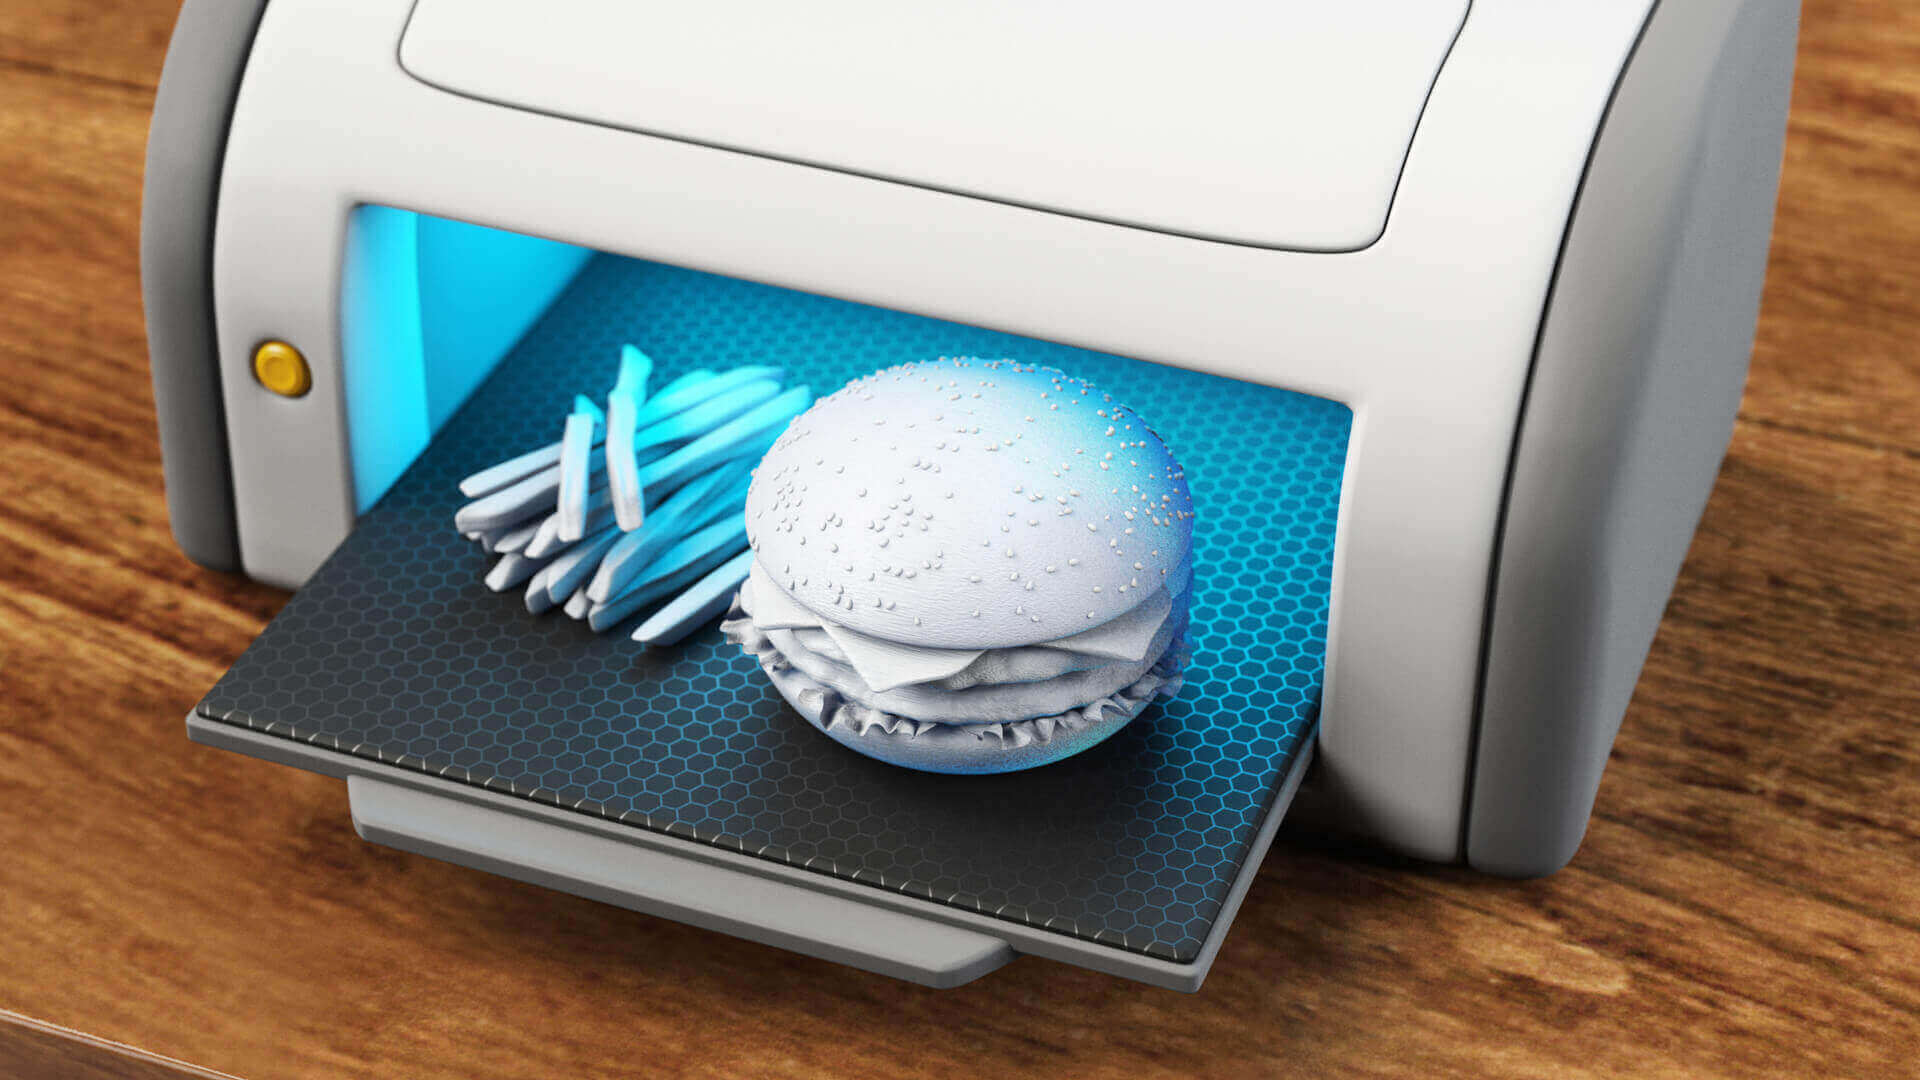 SCOFF3D Wants to Open a 3D Printed Food Cafe | All3DP